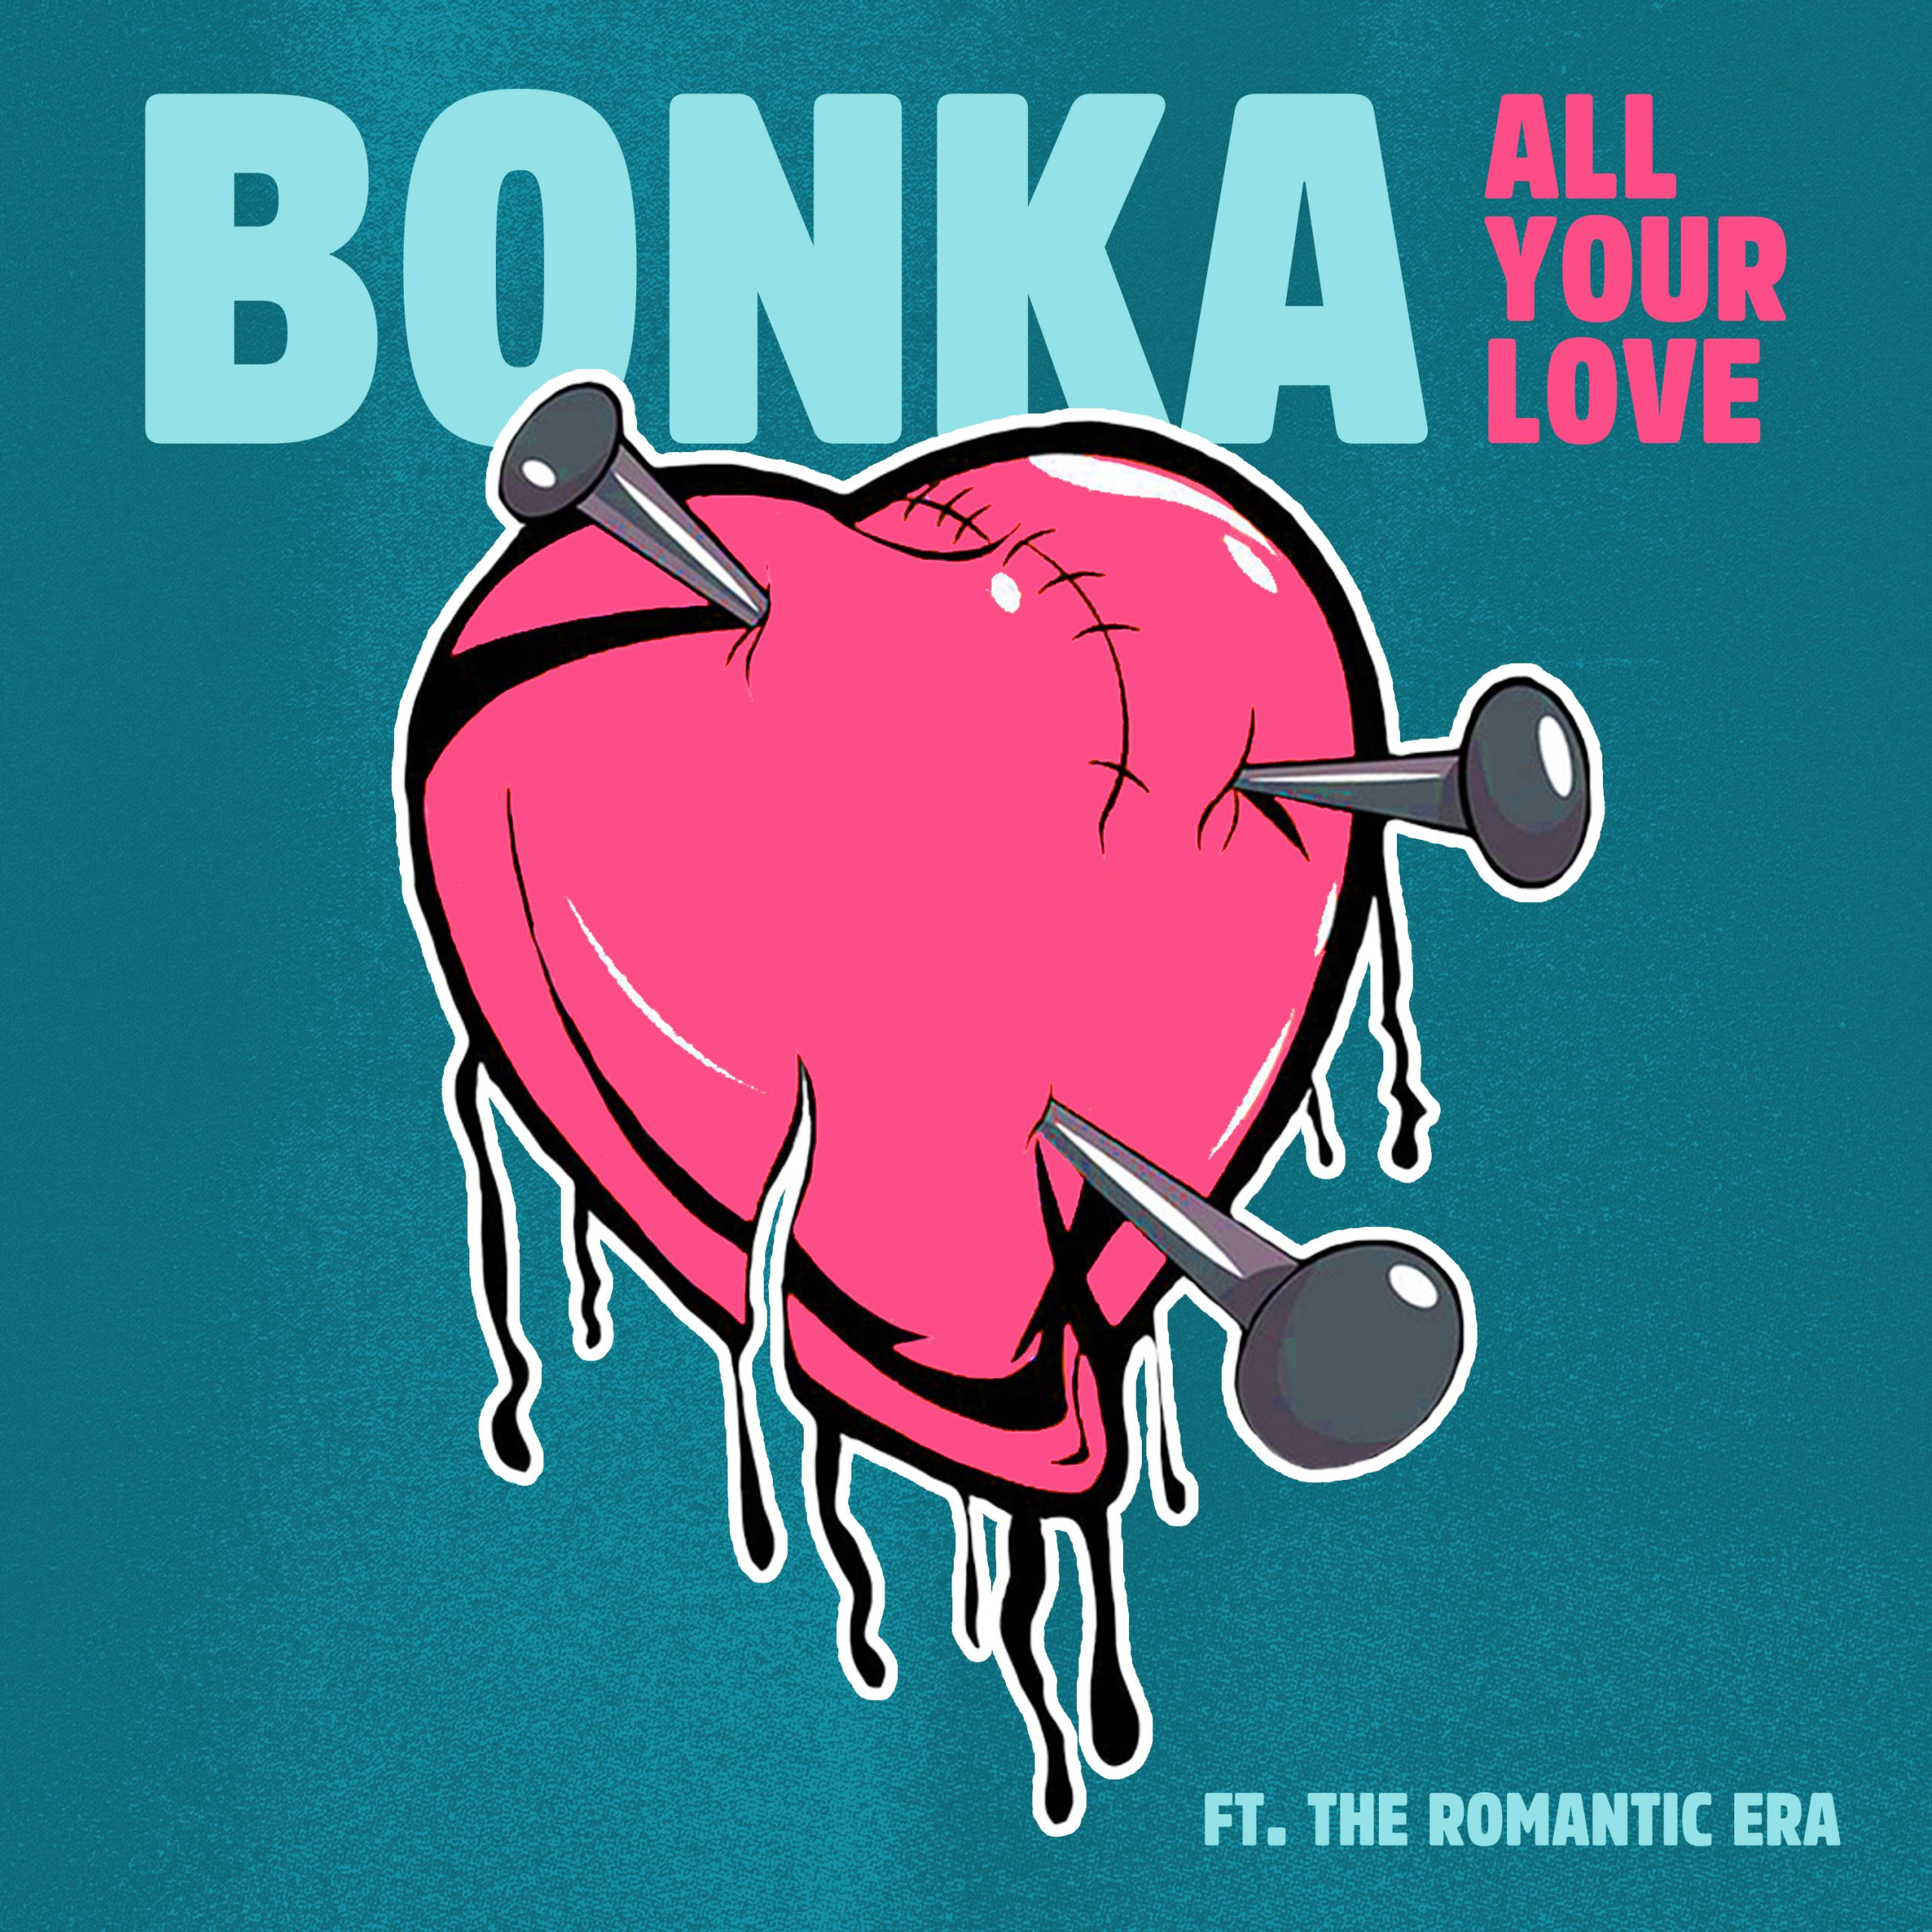 Bonka_AllYour Love_Final-2